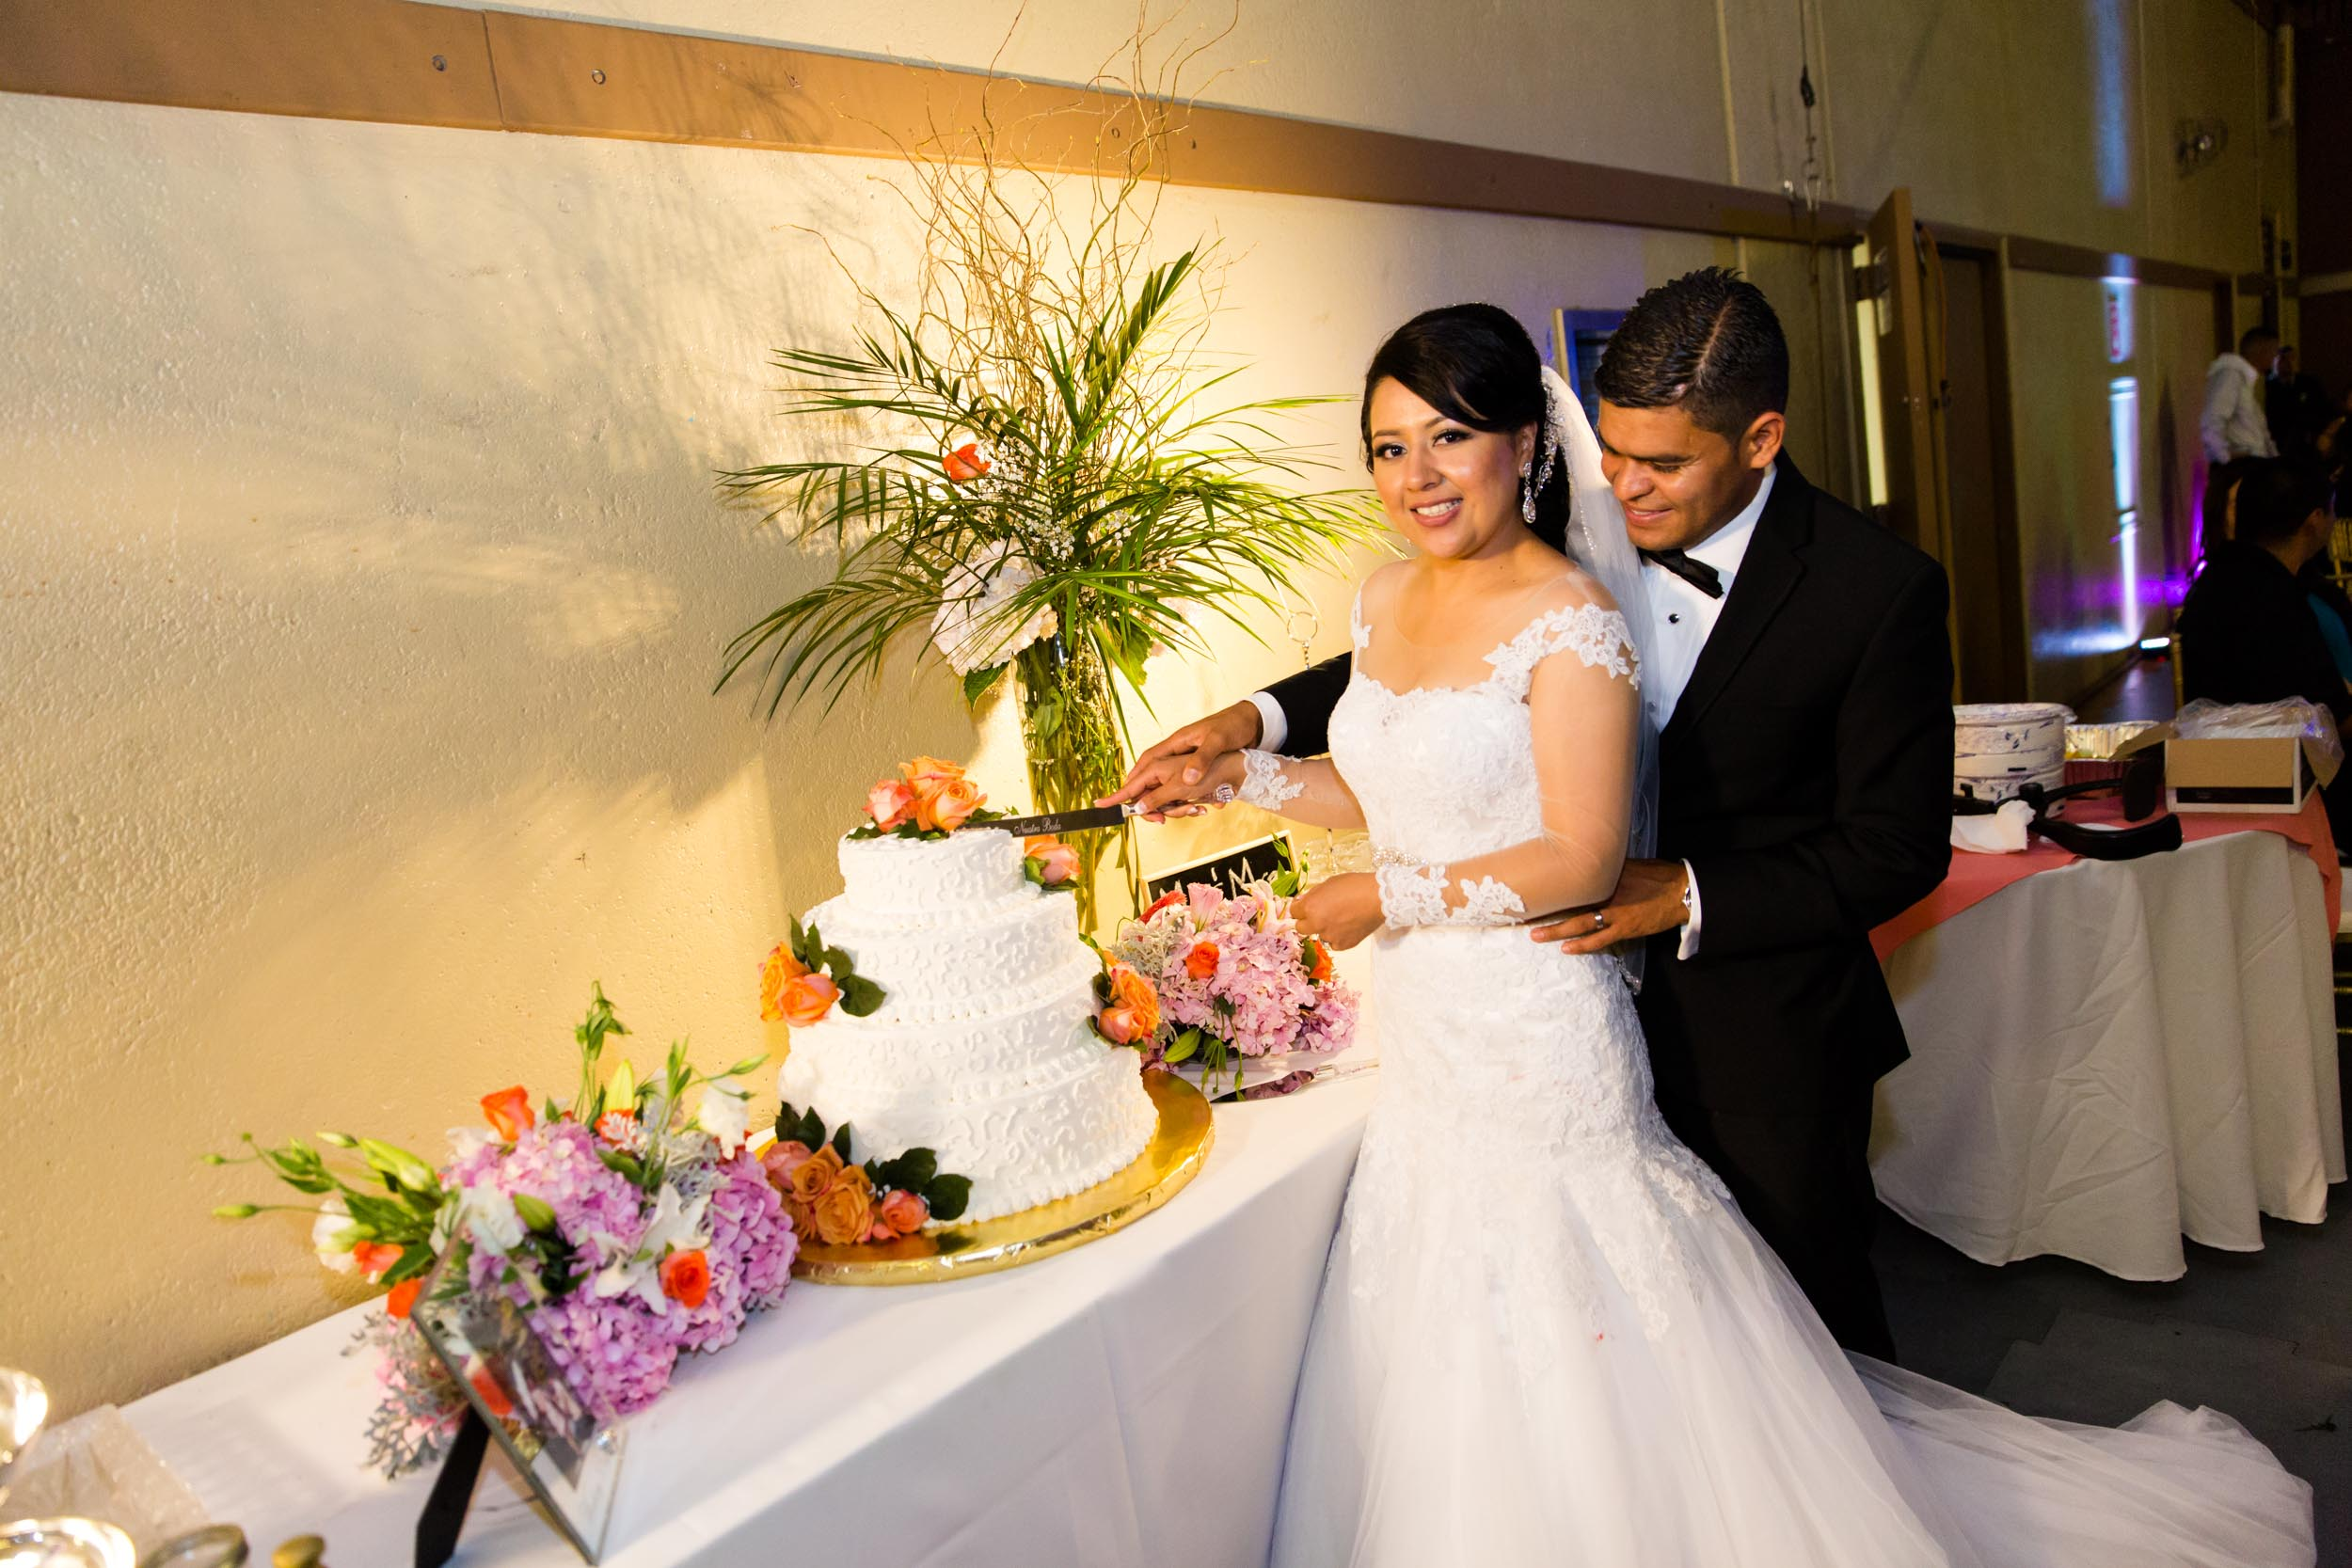 Our Wedding-541